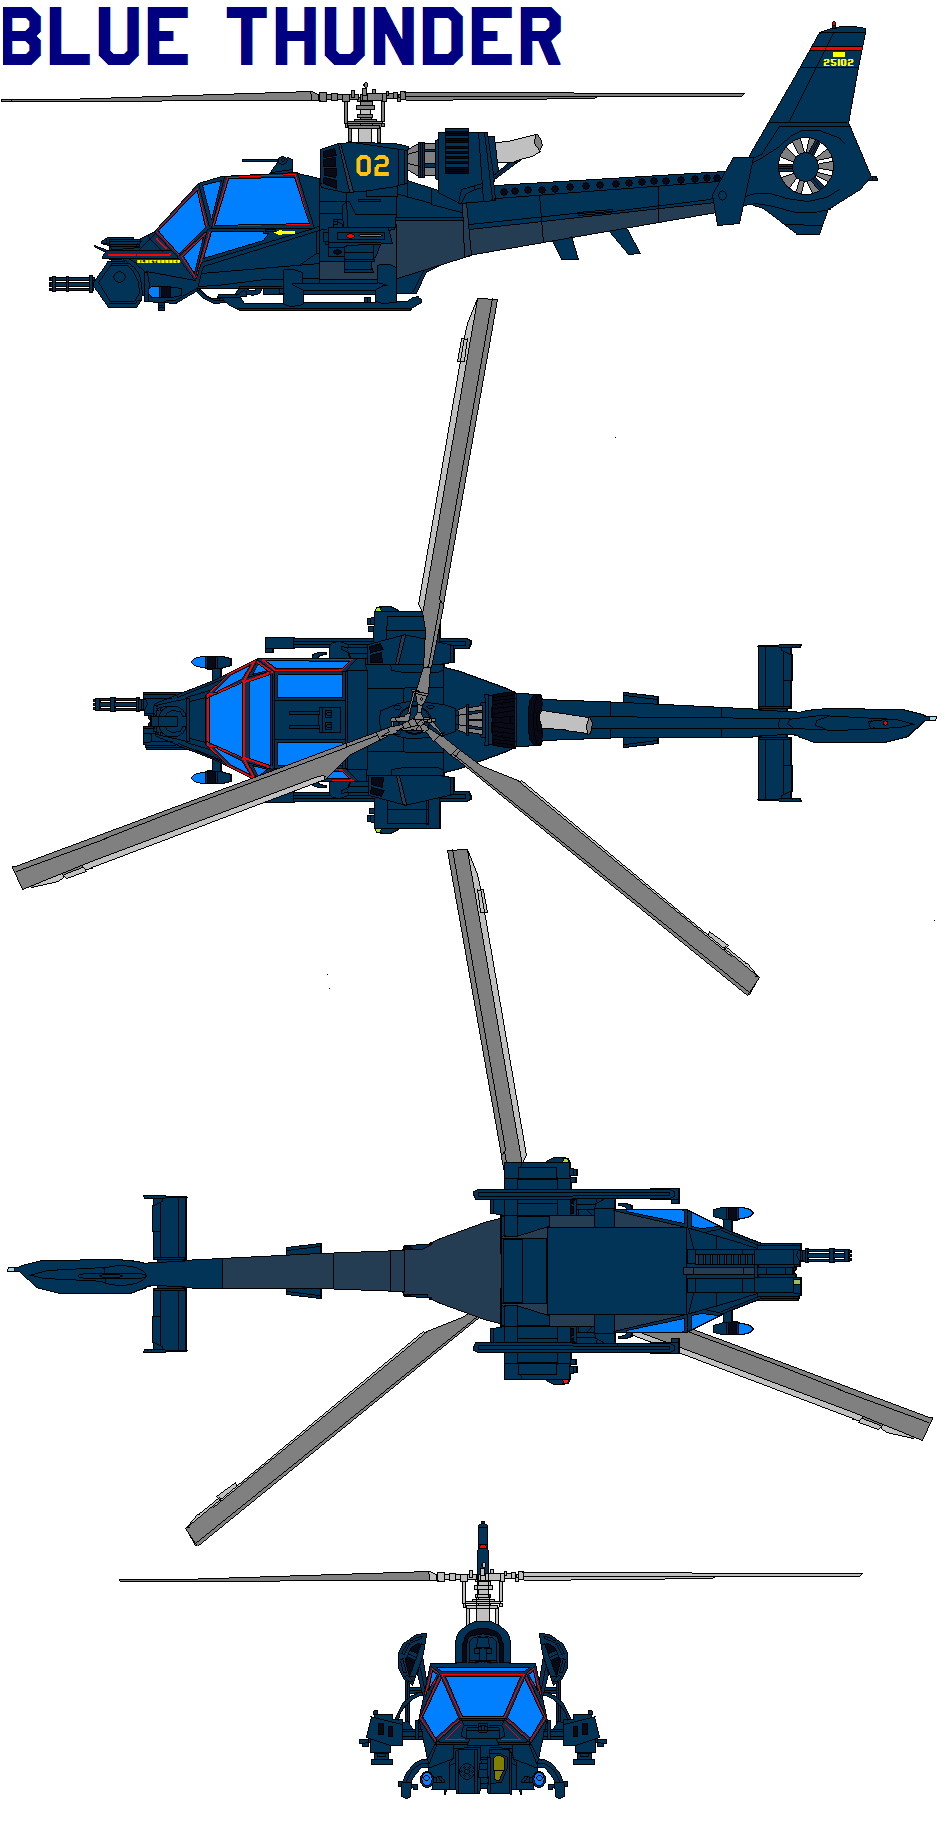 1 4 scale rc helicopters with Blue Thunder 187028949 on Product info php together with Scale Jet Engine further 150859642640 moreover Rc Model Airplane Kits likewise 109e Royal Class 148 P 19965.